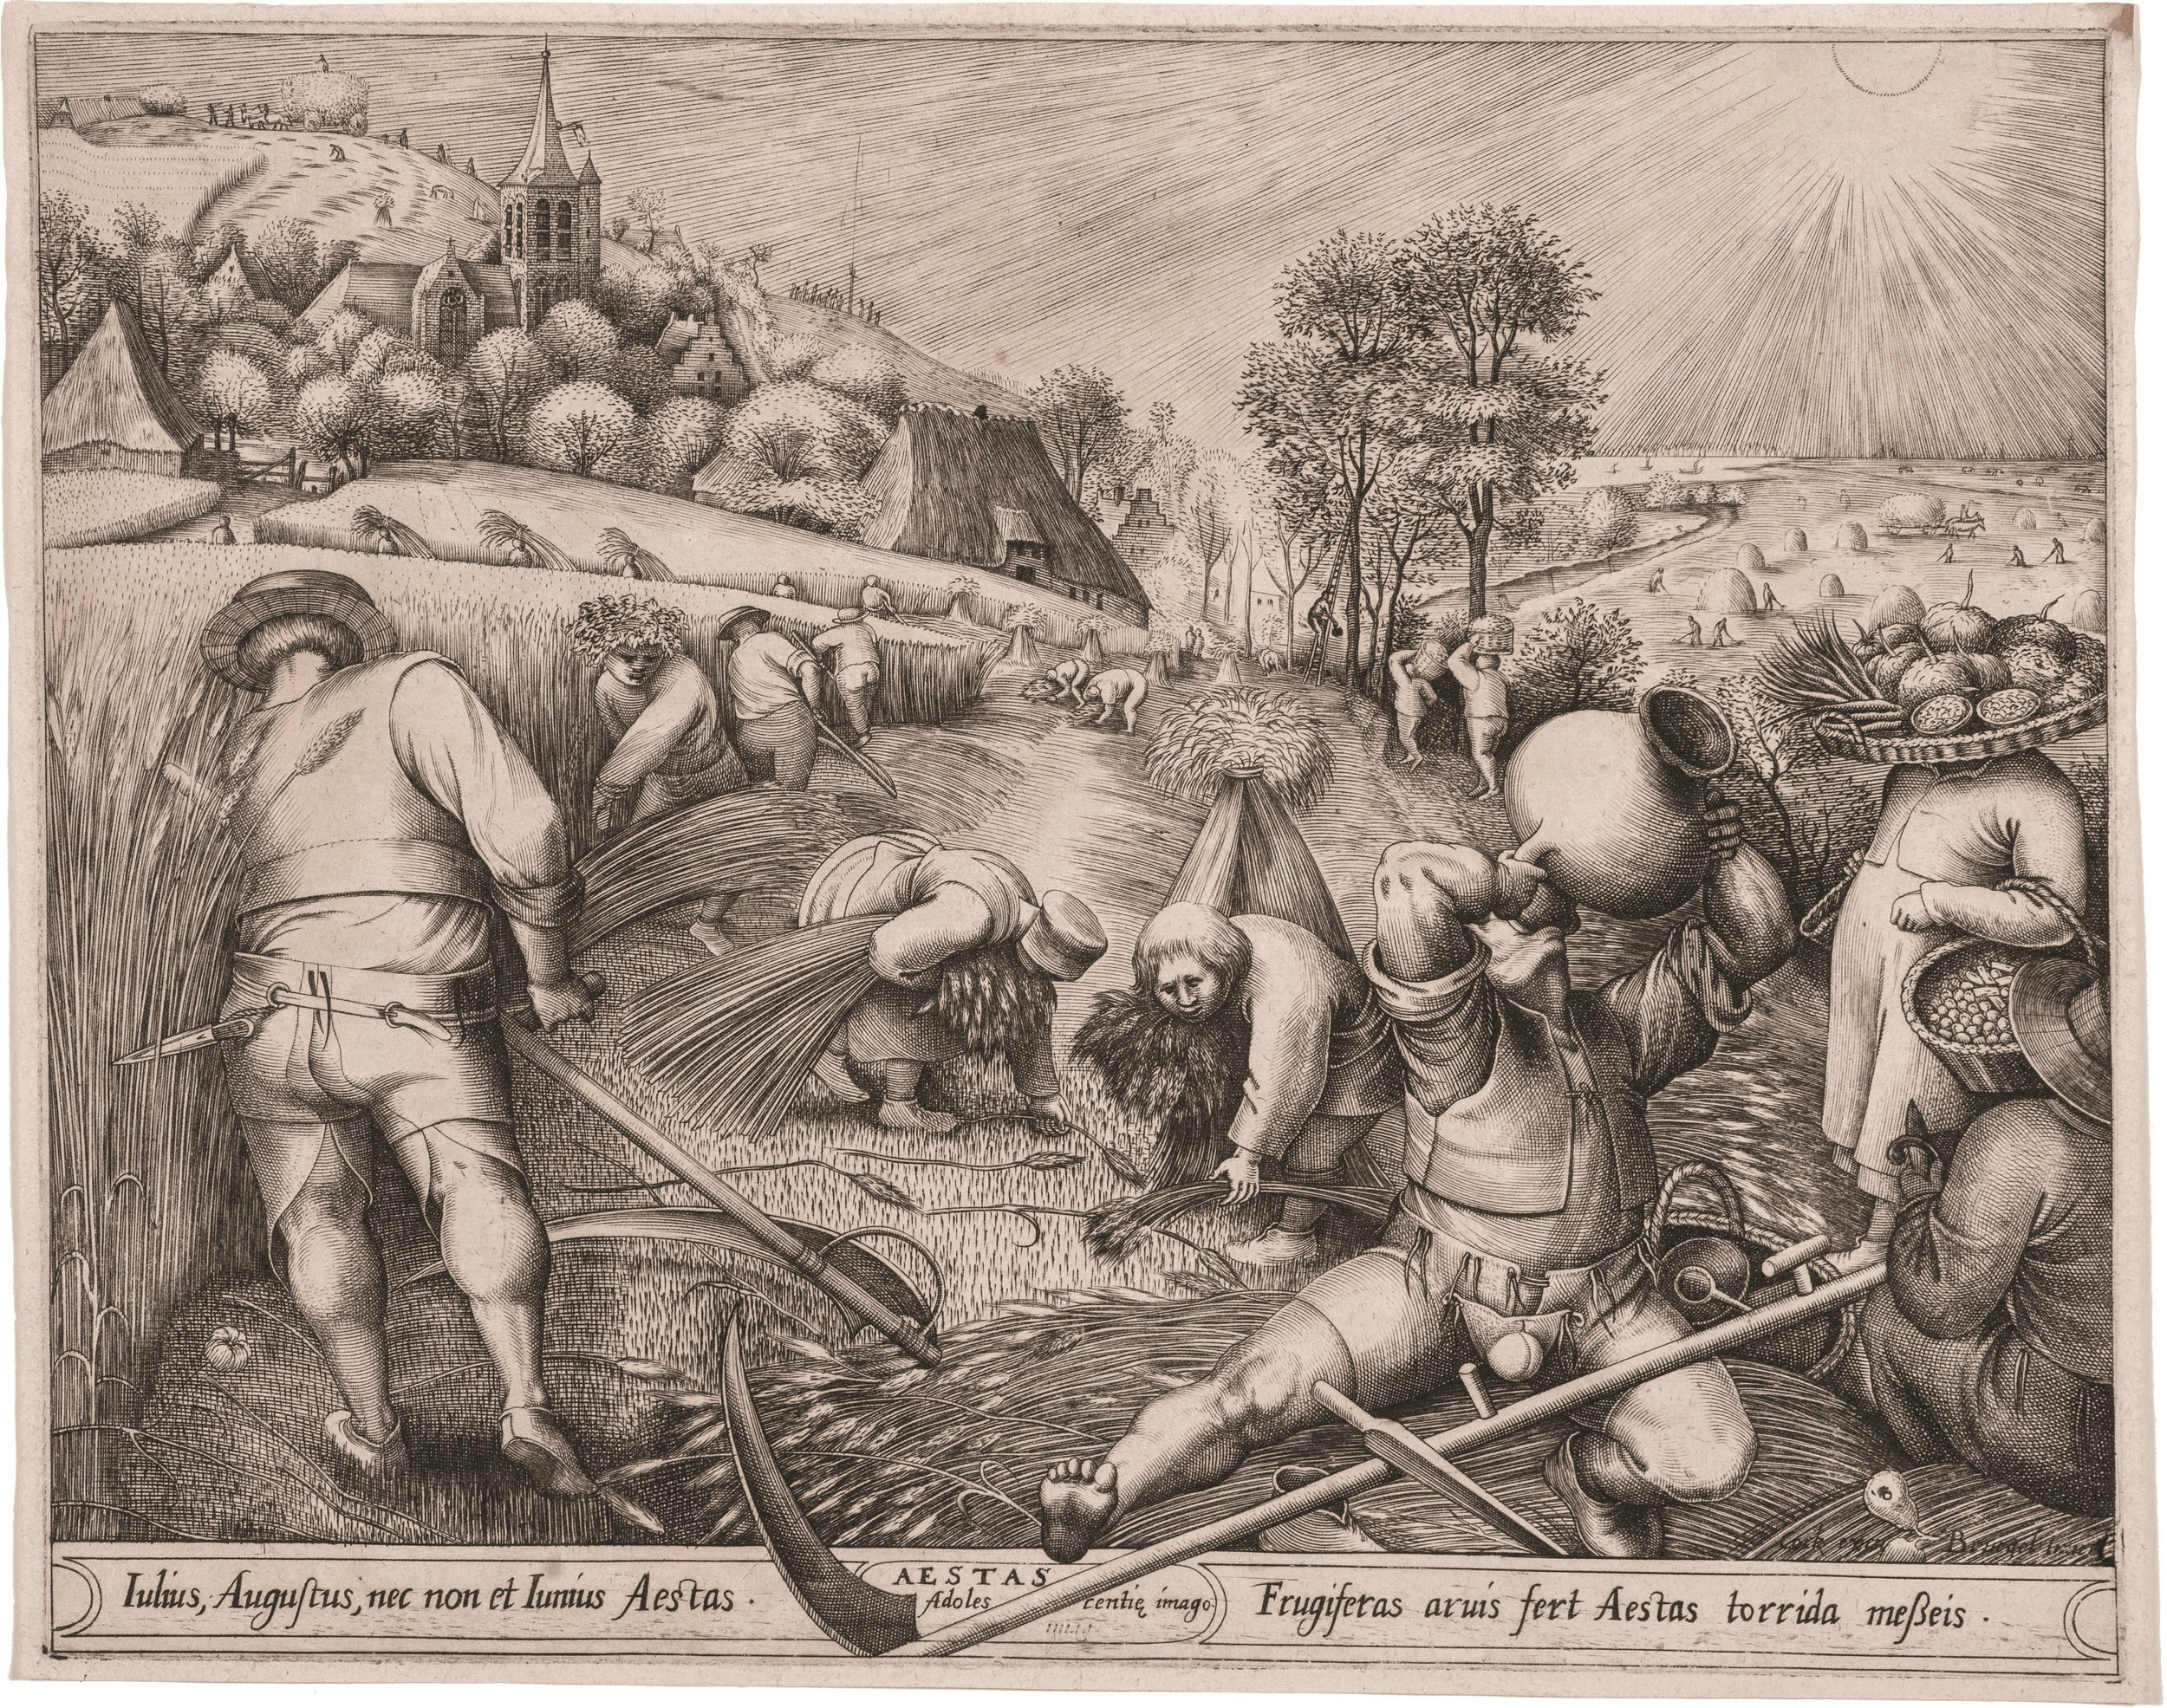 Pieter Bruegel    (c. 1525 Breda-Brussel 1569) egraved by Pieter van der Heyden (c. 1525 Antwerp-Berchem 1569) published by Hieronymus Cock (1510 [1518?] Antwerp (1570).    Summer   , drawing 1568, print 1570-1572, engraving on paper, 22.5x29 cm., Hearn Family Trust. Courtesy of the McMullen Museum of Art, Boston College.